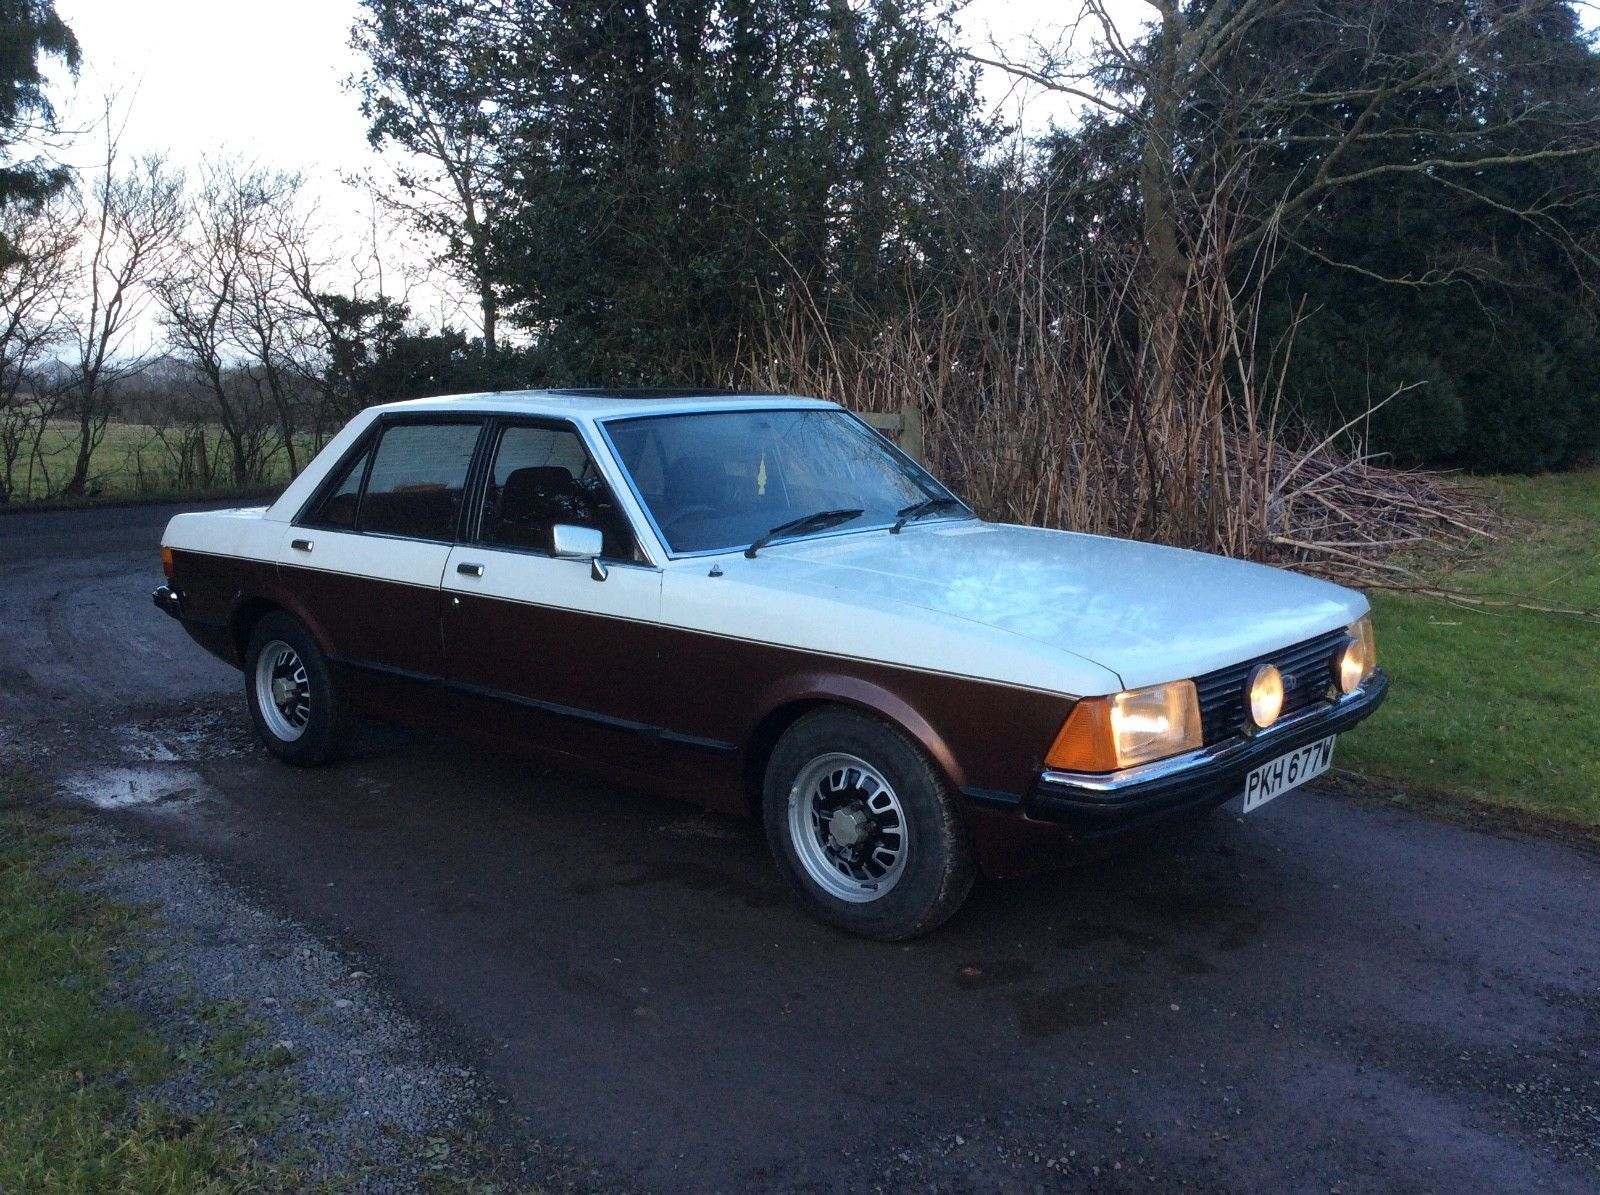 eBay: 1980 Ford Granada Mk2 pre facelift 2.3 L spec - V6 Manual saloon. Classic  Ford